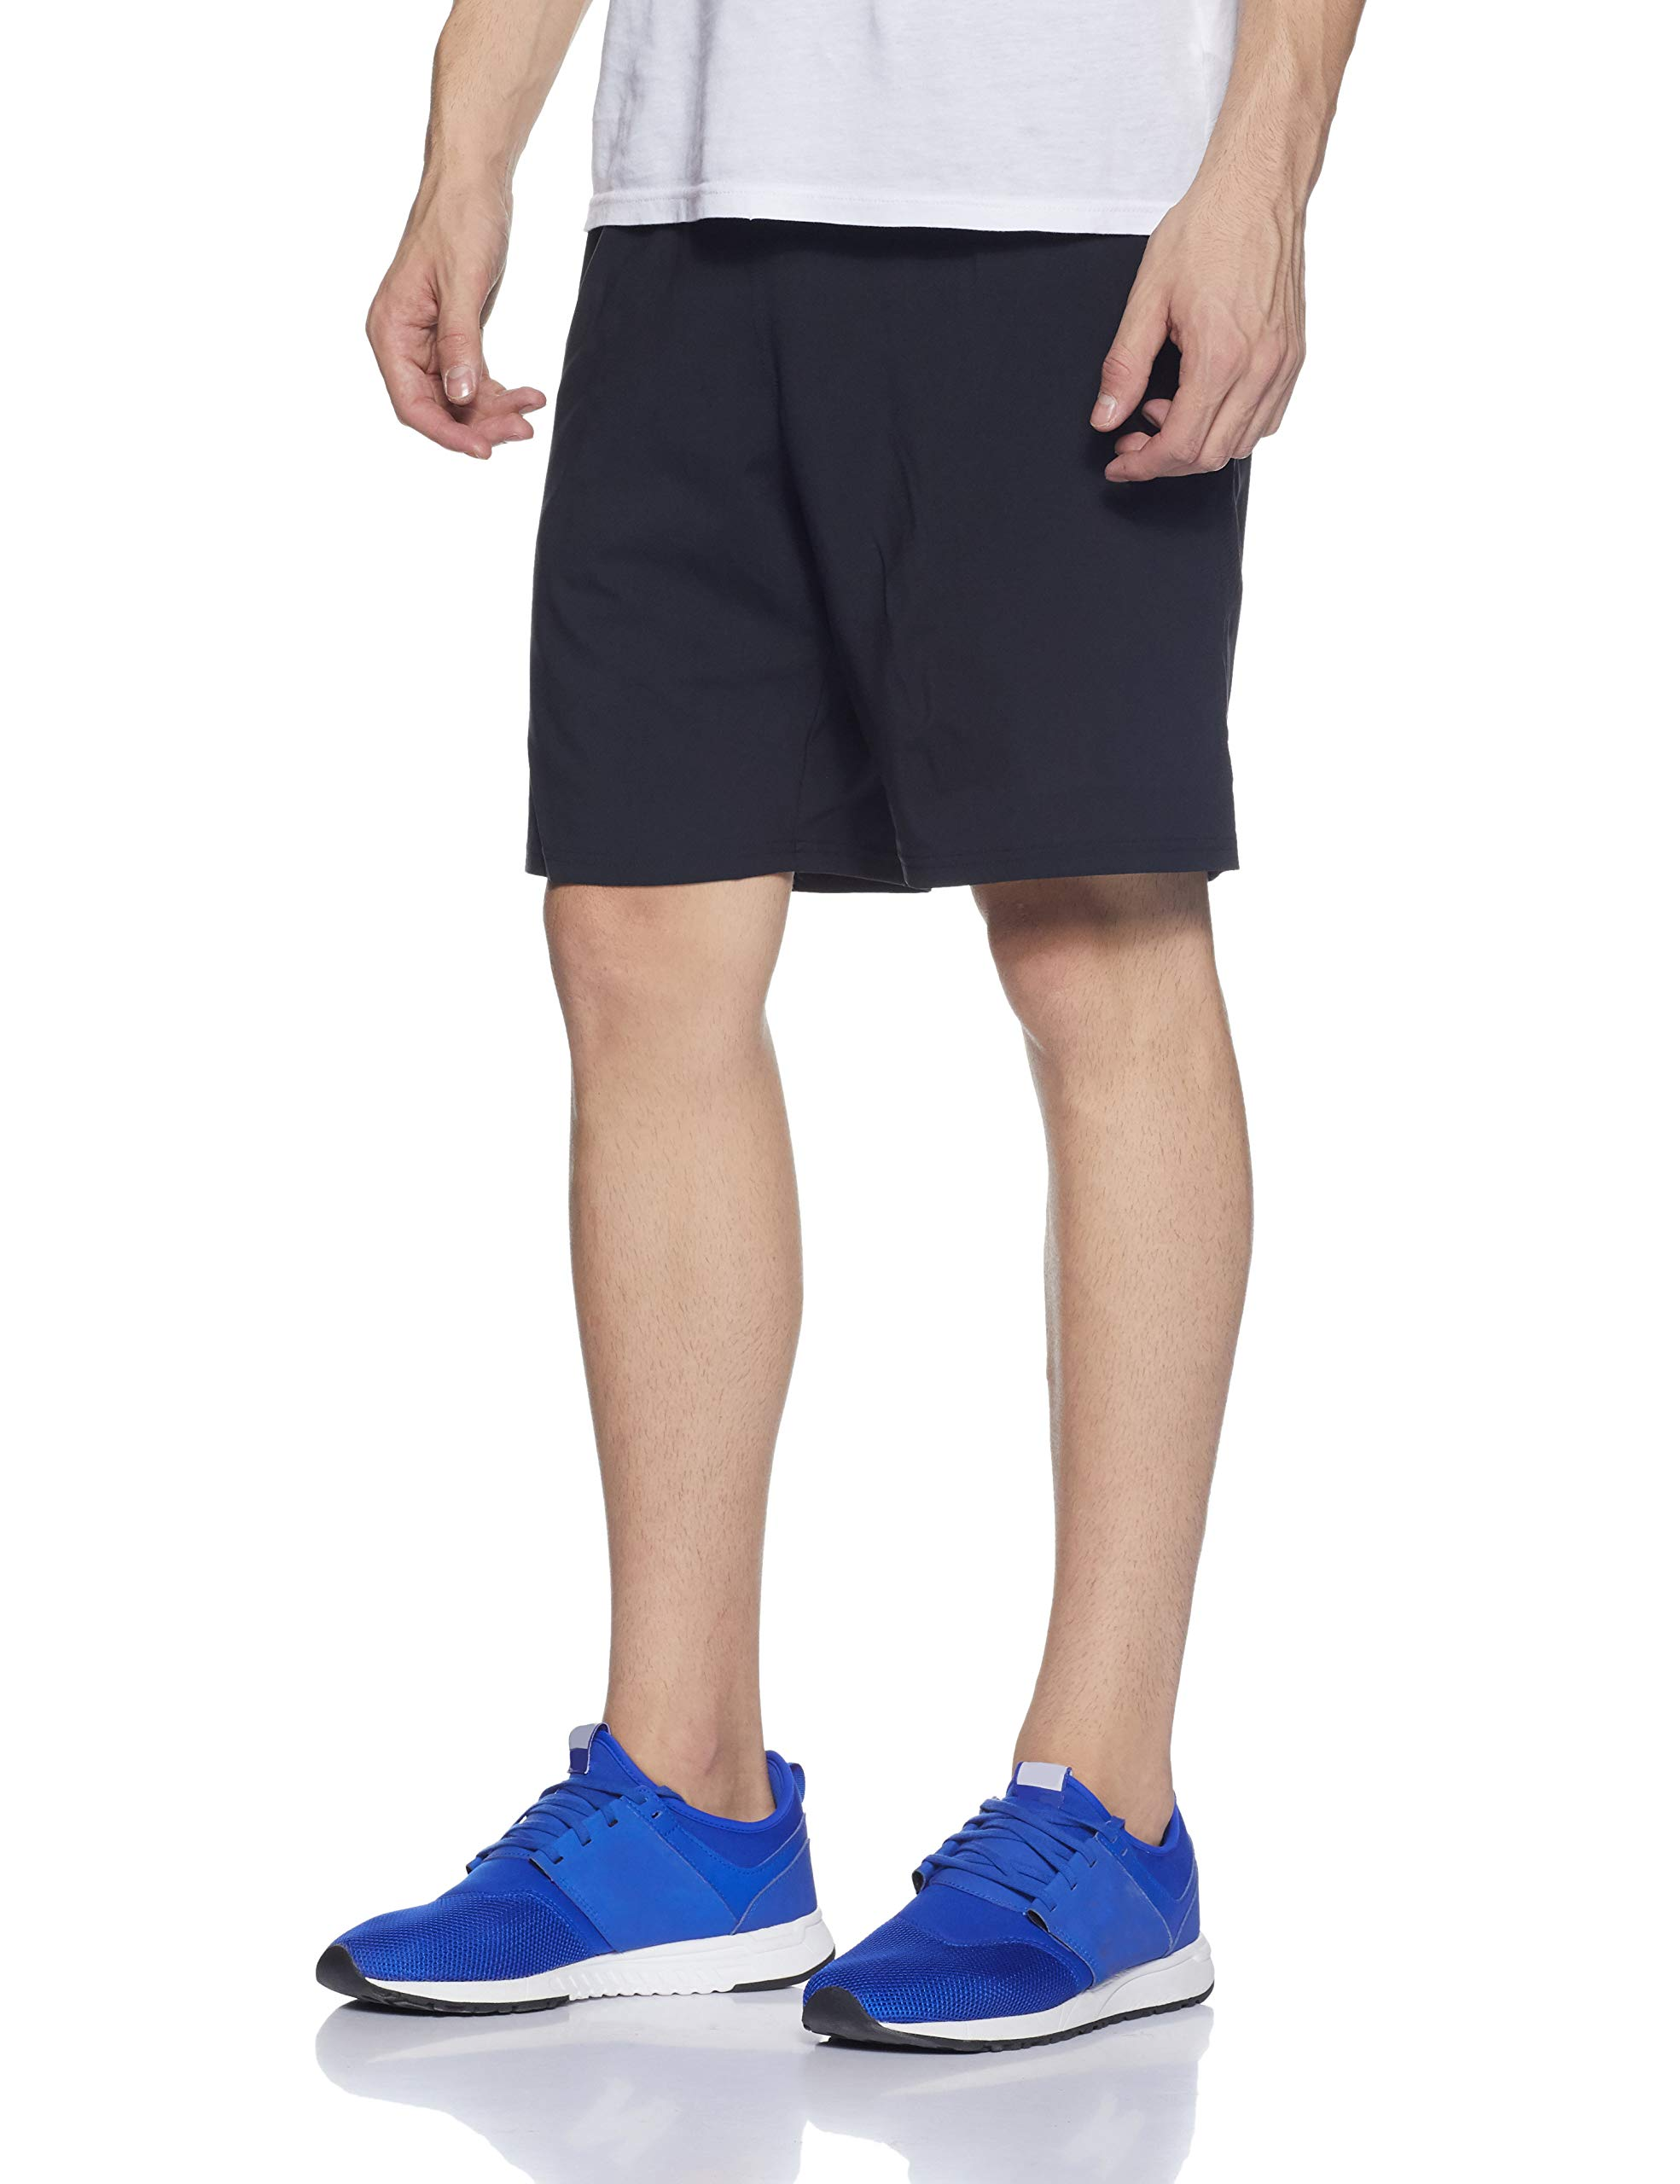 Under Armour Men's Launch 9'' Shorts, Black/Reflective, X-Small by Under Armour (Image #3)